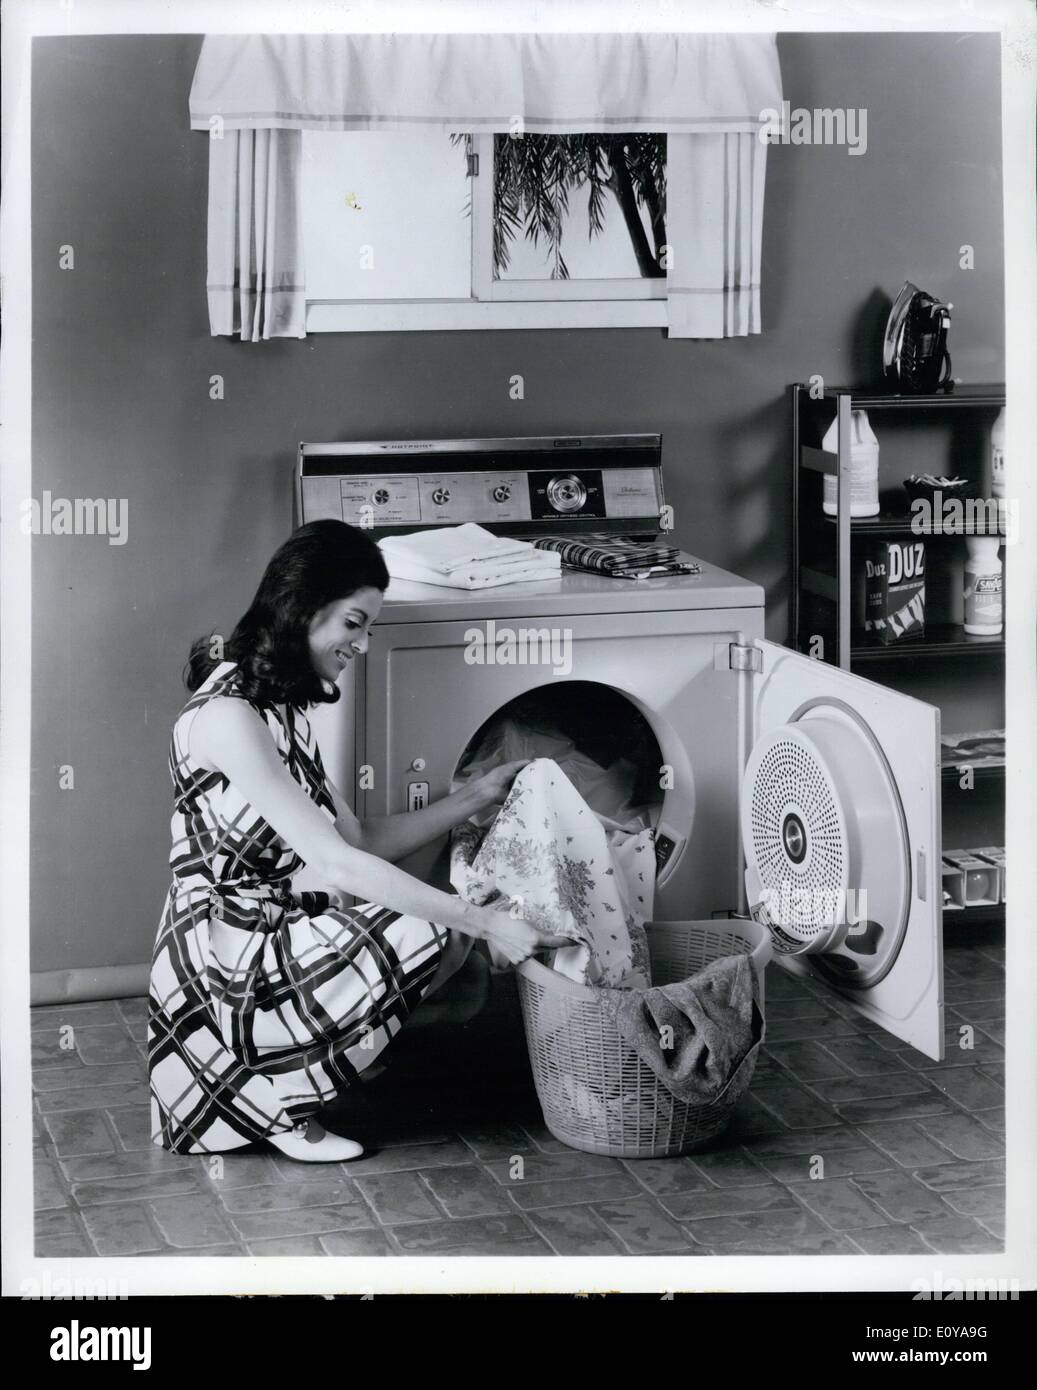 Sep. 09, 1969 - For Immediate Release: Automatic dryers with big-capacity drums to handle permanent press clothing and household lines properly are new from Hotpoint. This 7.5-cubic-foot-capacity dryer features an electronic moisture sensor which gauges the correct degree of dryness in each load and shuts the dryer off automatically - Stock Image